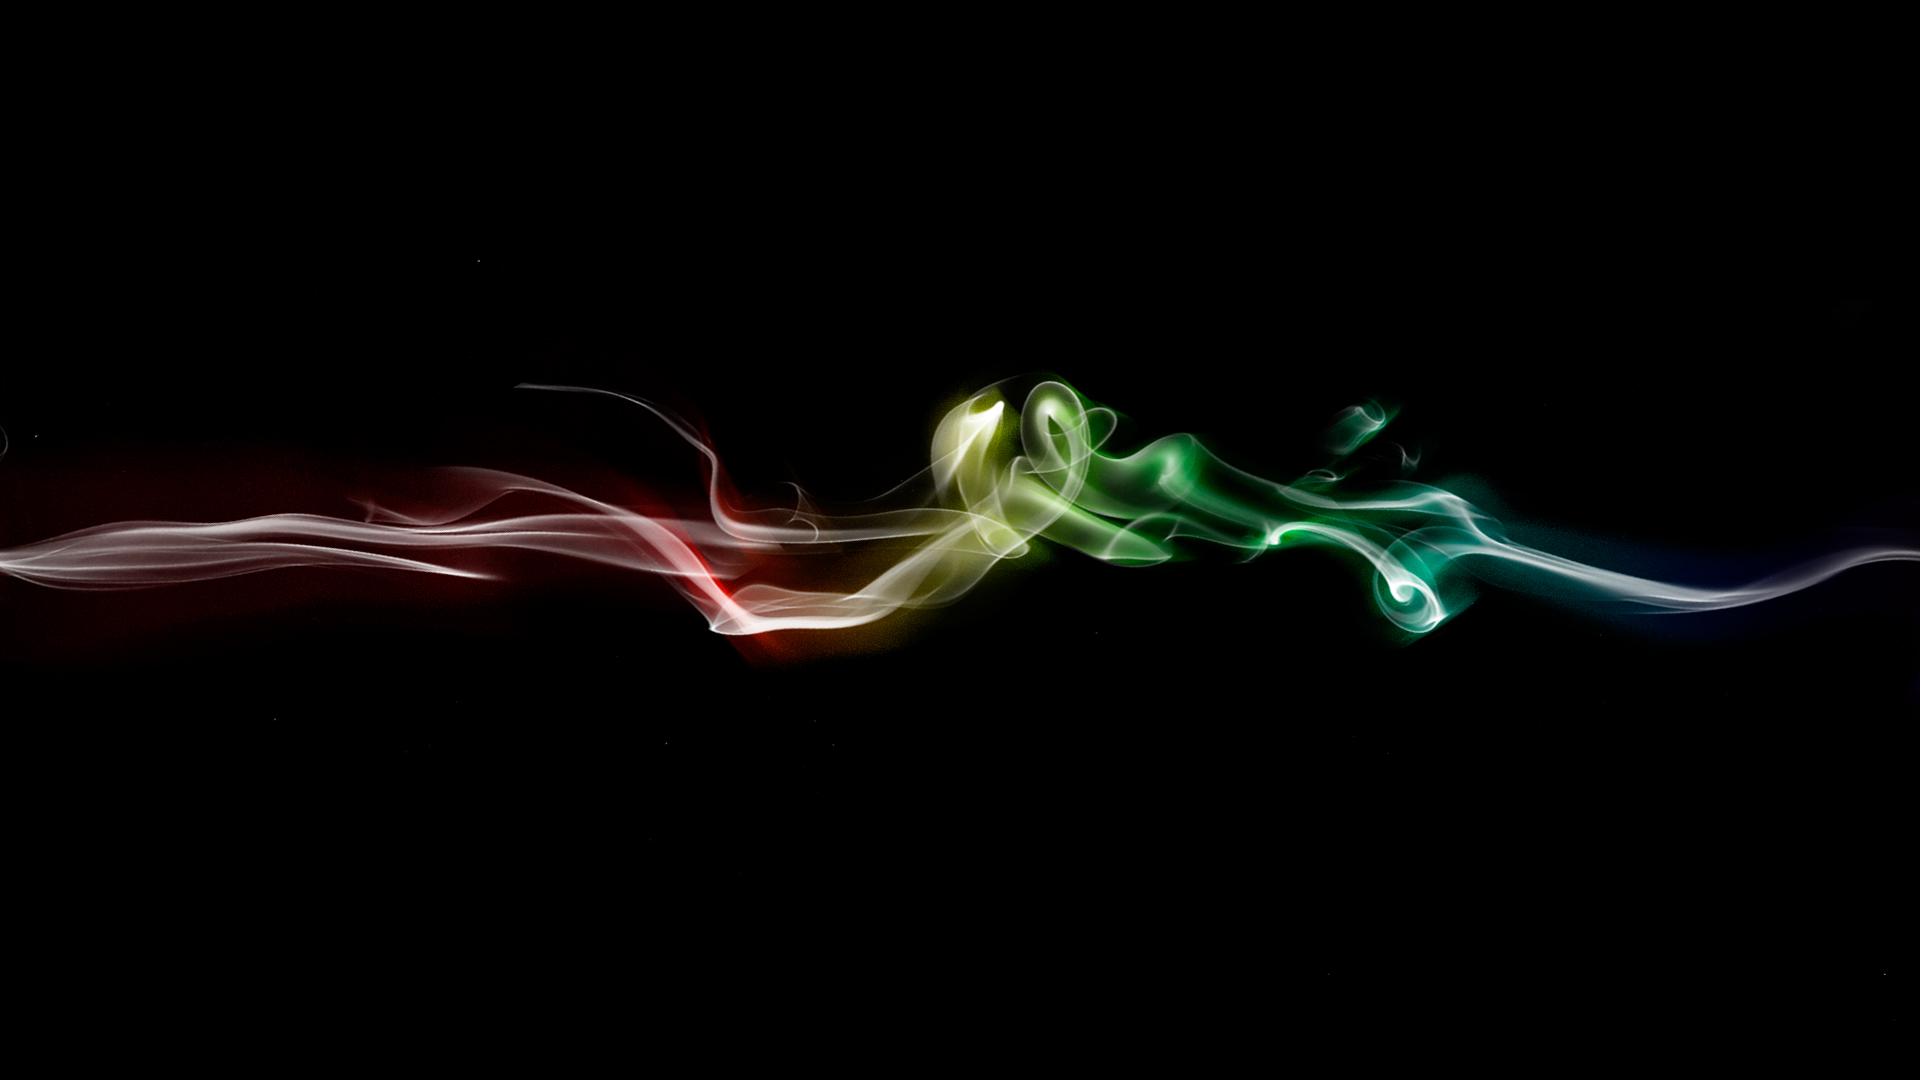 wallpapers animated background explore smoke wallpaper another 1920x1080